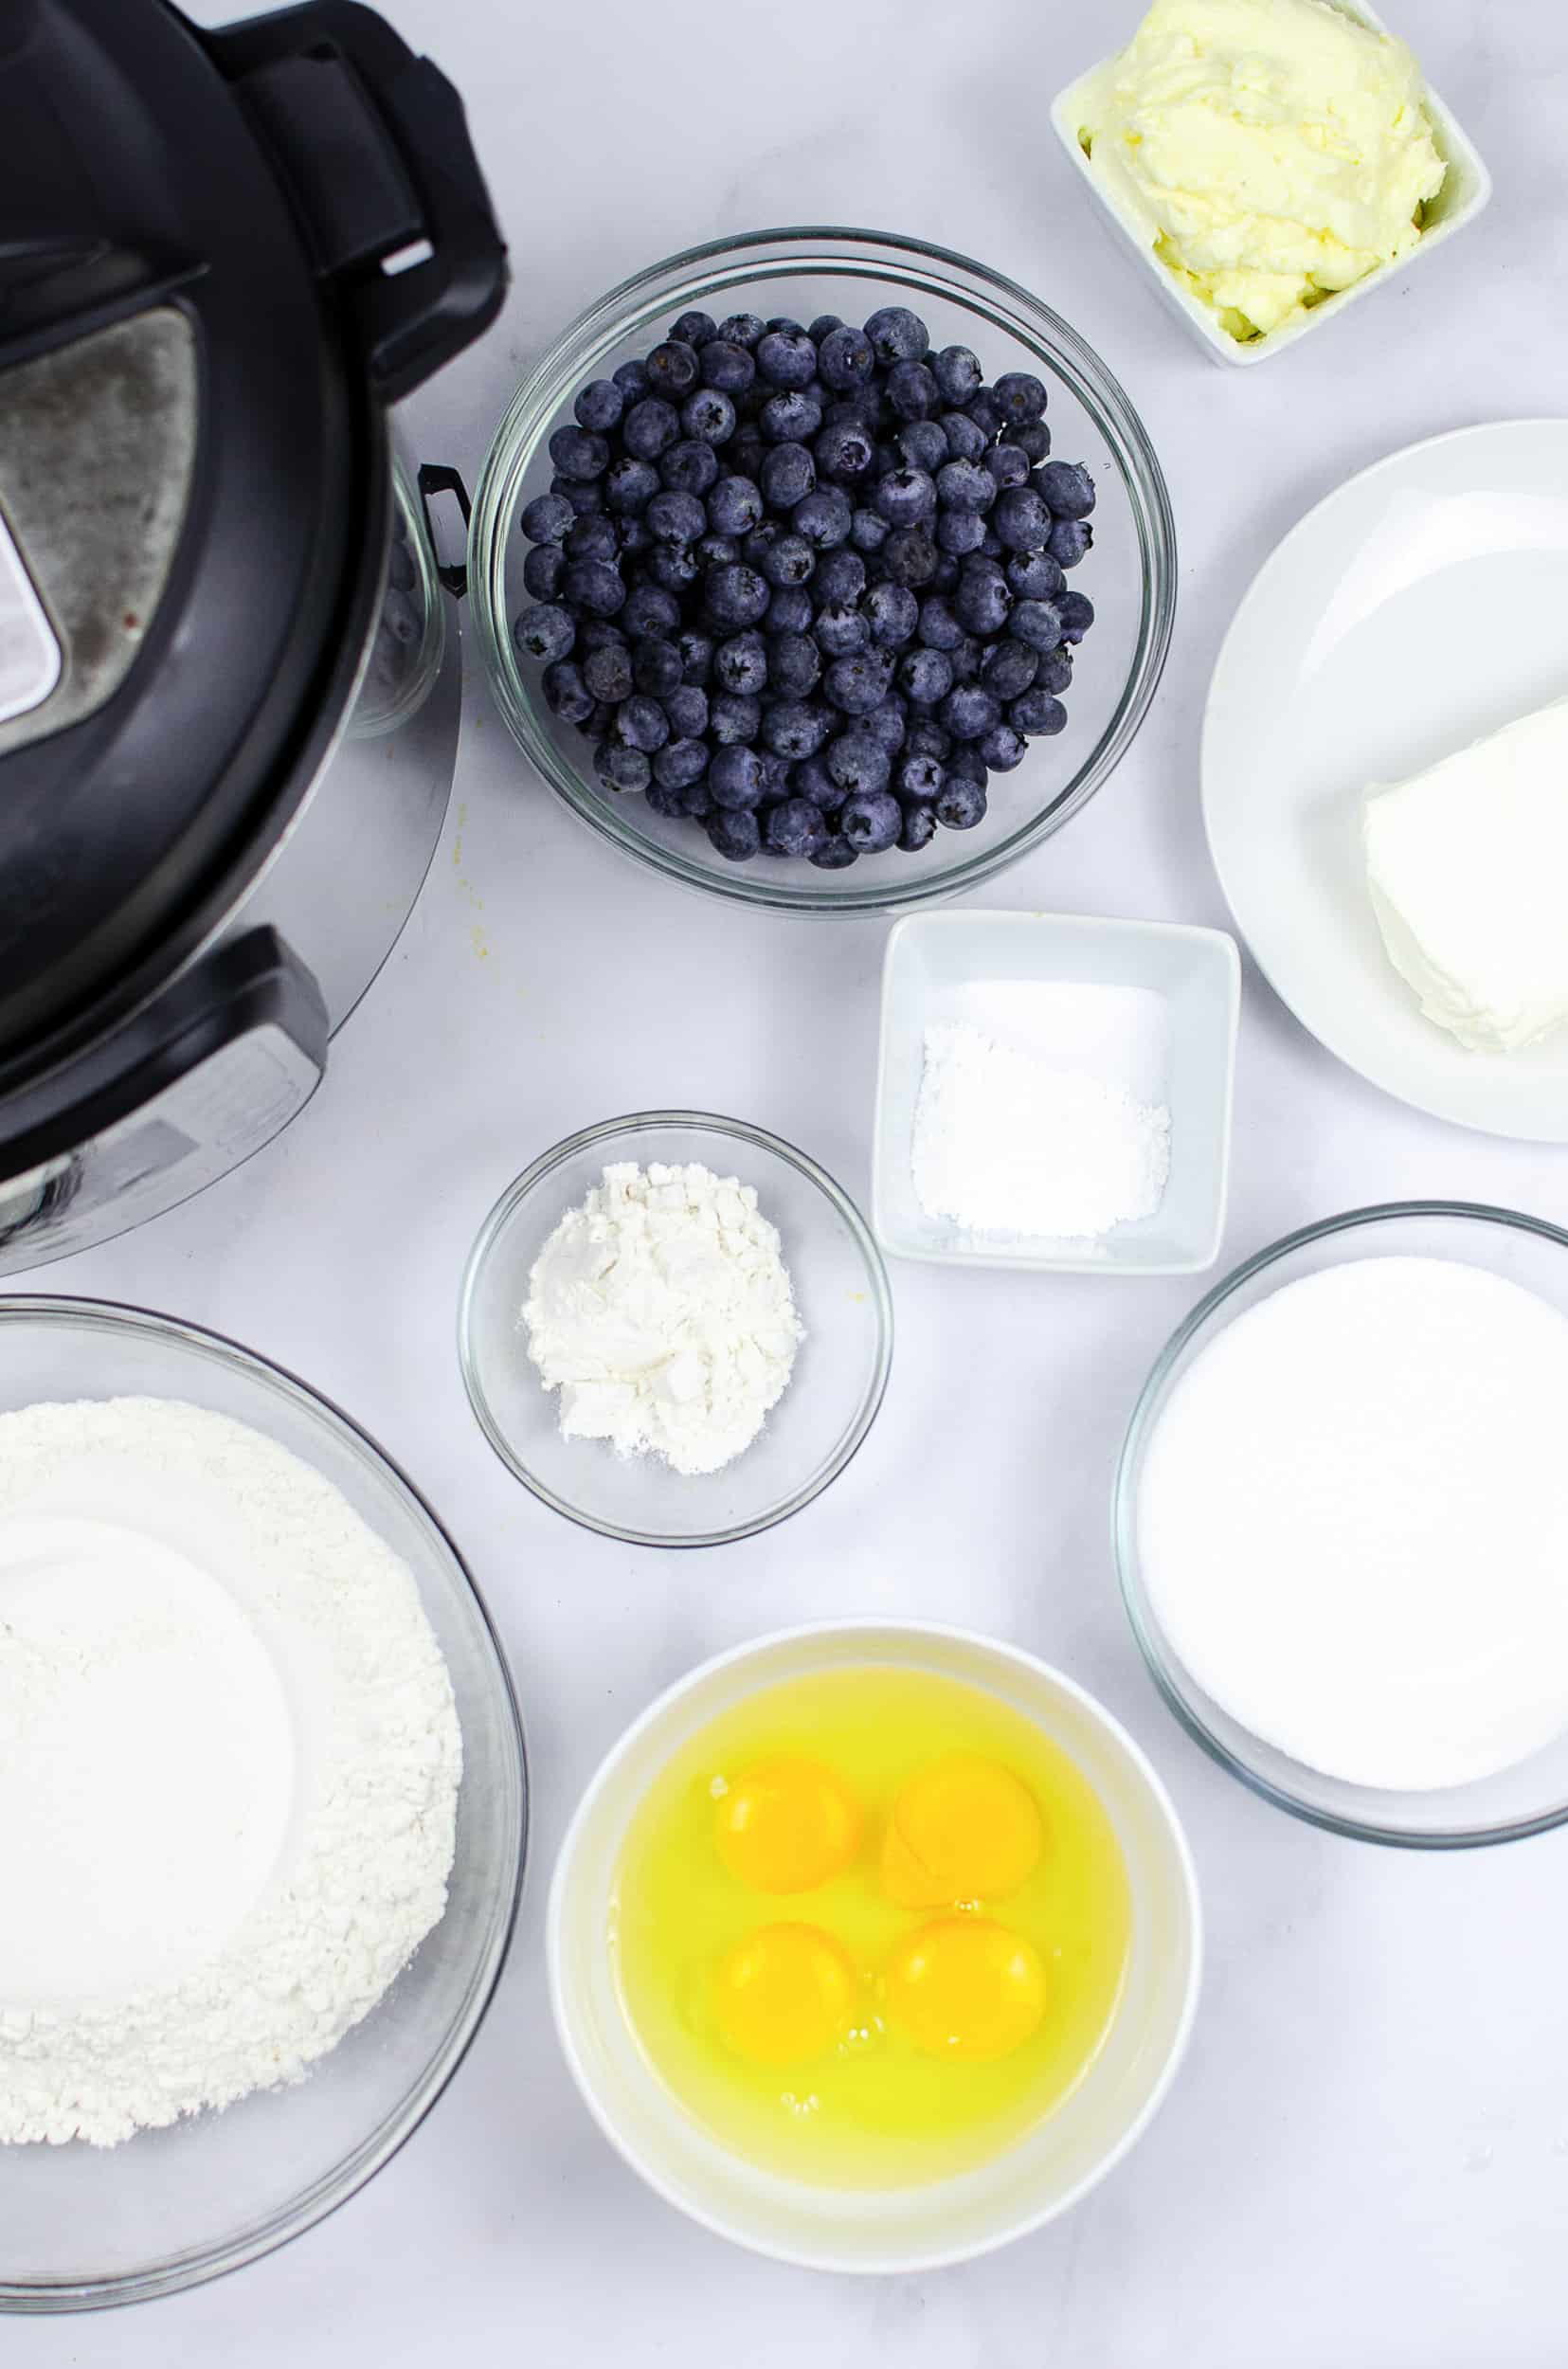 blueberry muffin cake recipe ingredients in clear bowls